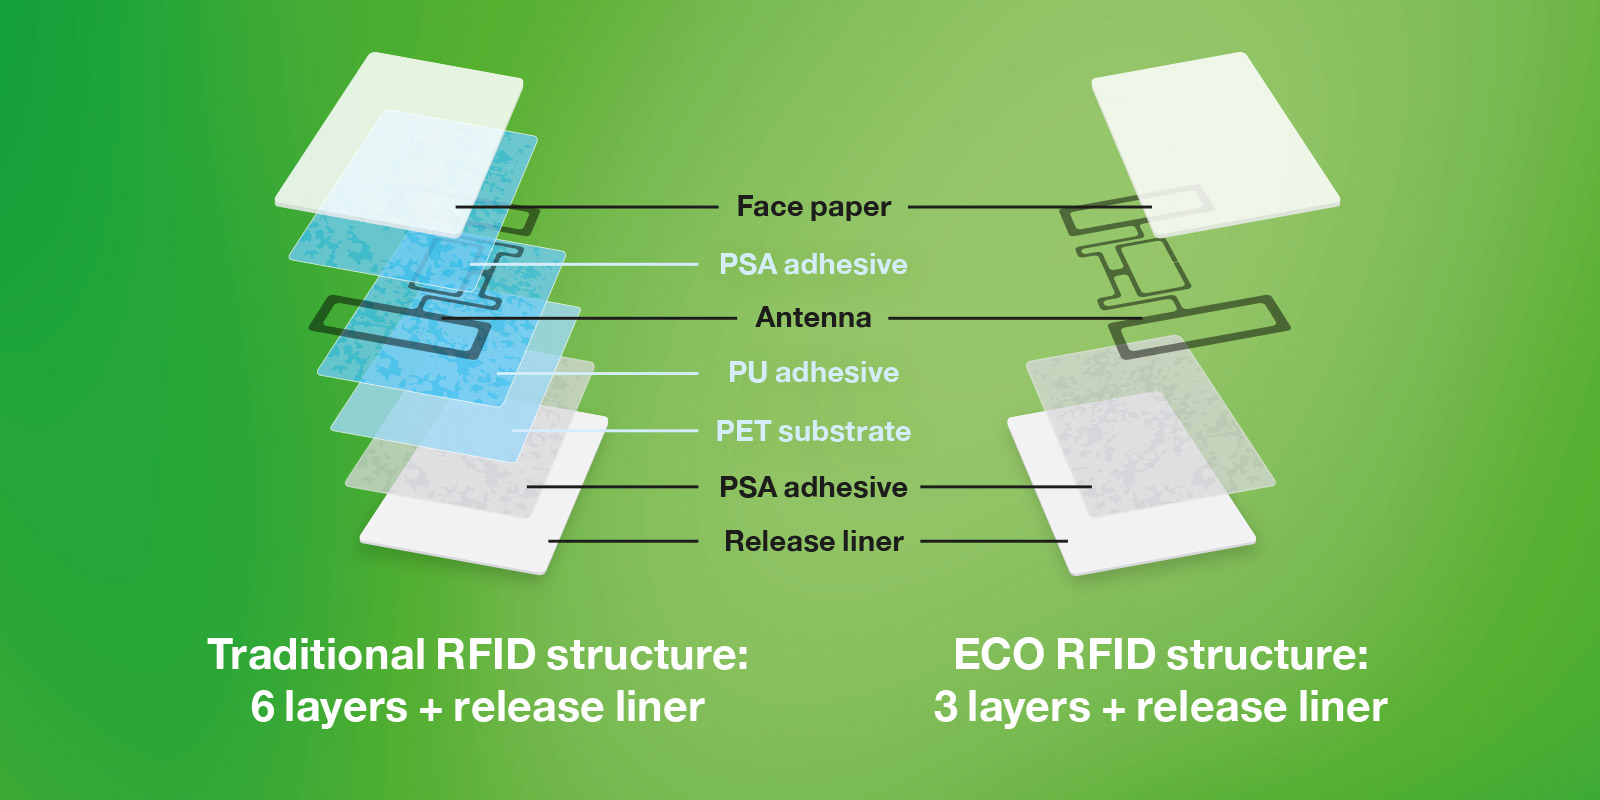 Traditional RFID structure vs ECO RFID structure